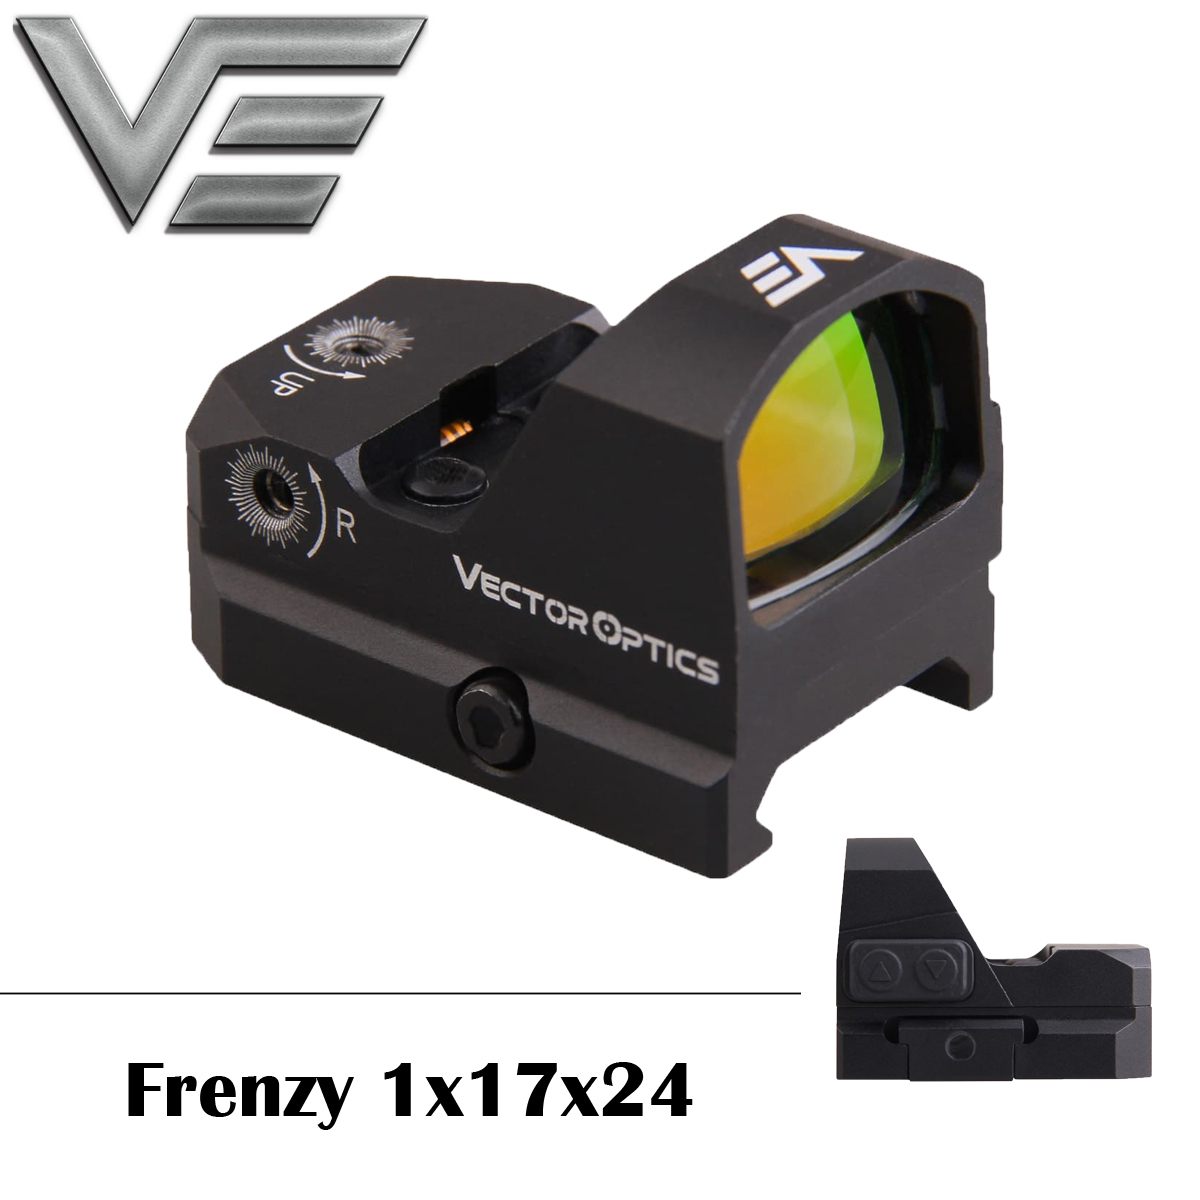 Vector Optics Frenzy 1x17x24 AR15 M4 AK47 Pistol Red Dot Scope 9mm Red Dot Sight With Water Proof Fit 21mm Picatinny GLOCK 17 19